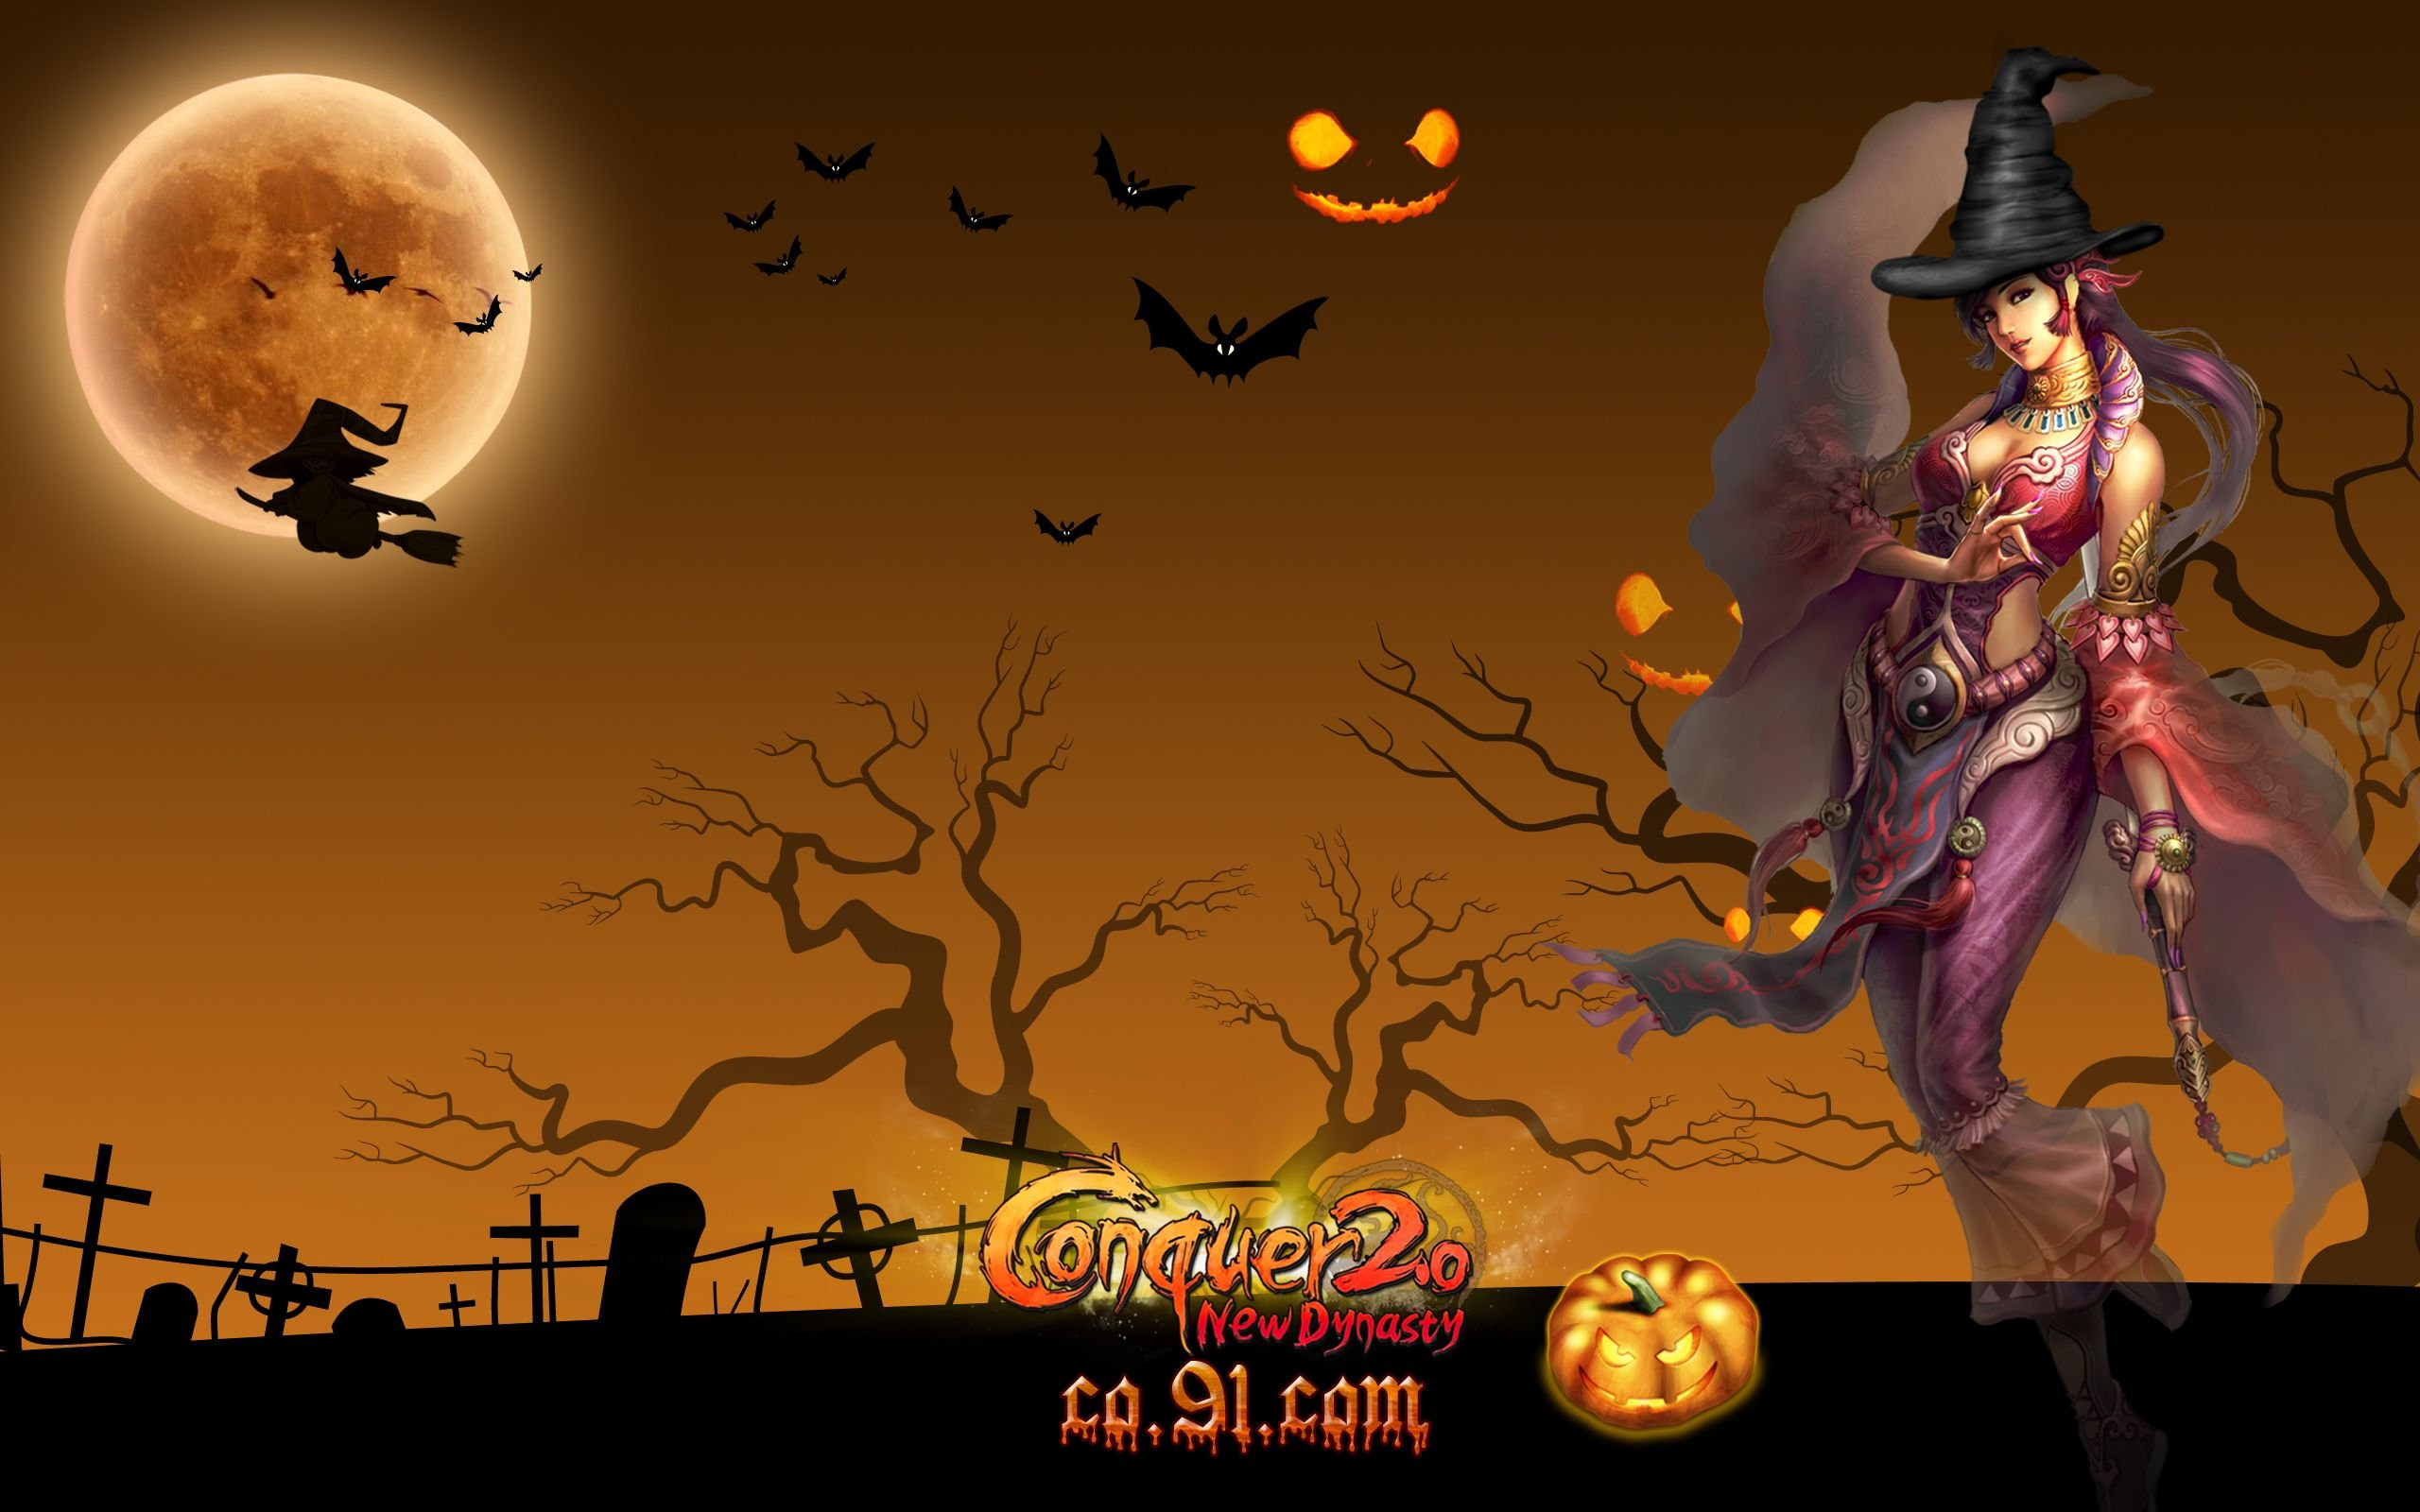 CONQUER ONLINE fantasy mmo rpg martial action fighting 1cono warrior poster halloween witch